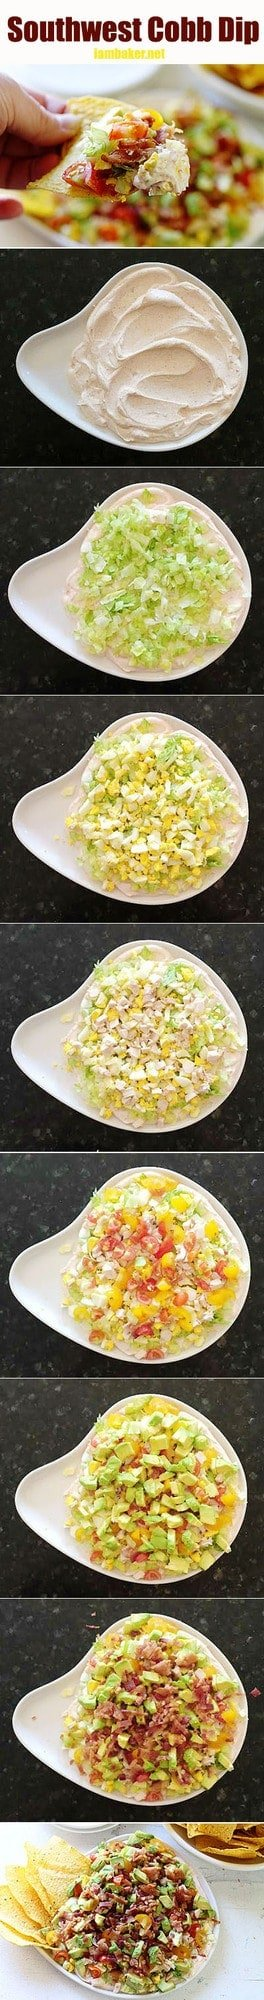 An amazing dip that everyone will love! My GO-TO appetizer!